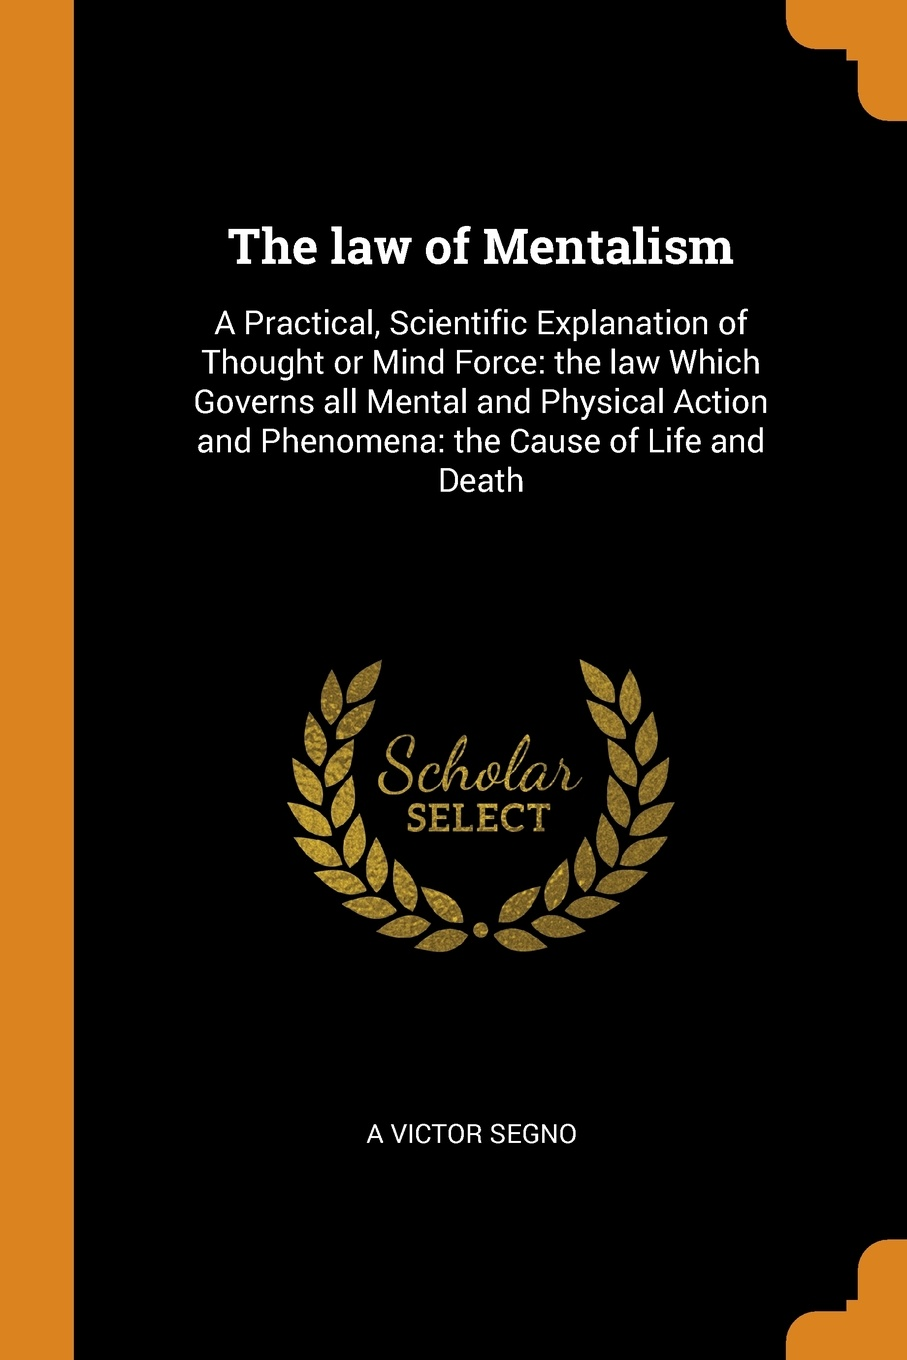 A Victor Segno The law of Mentalism. A Practical, Scientific Explanation of Thought or Mind Force: the law Which Governs all Mental and Physical Action and Phenomena: the Cause of Life and Death